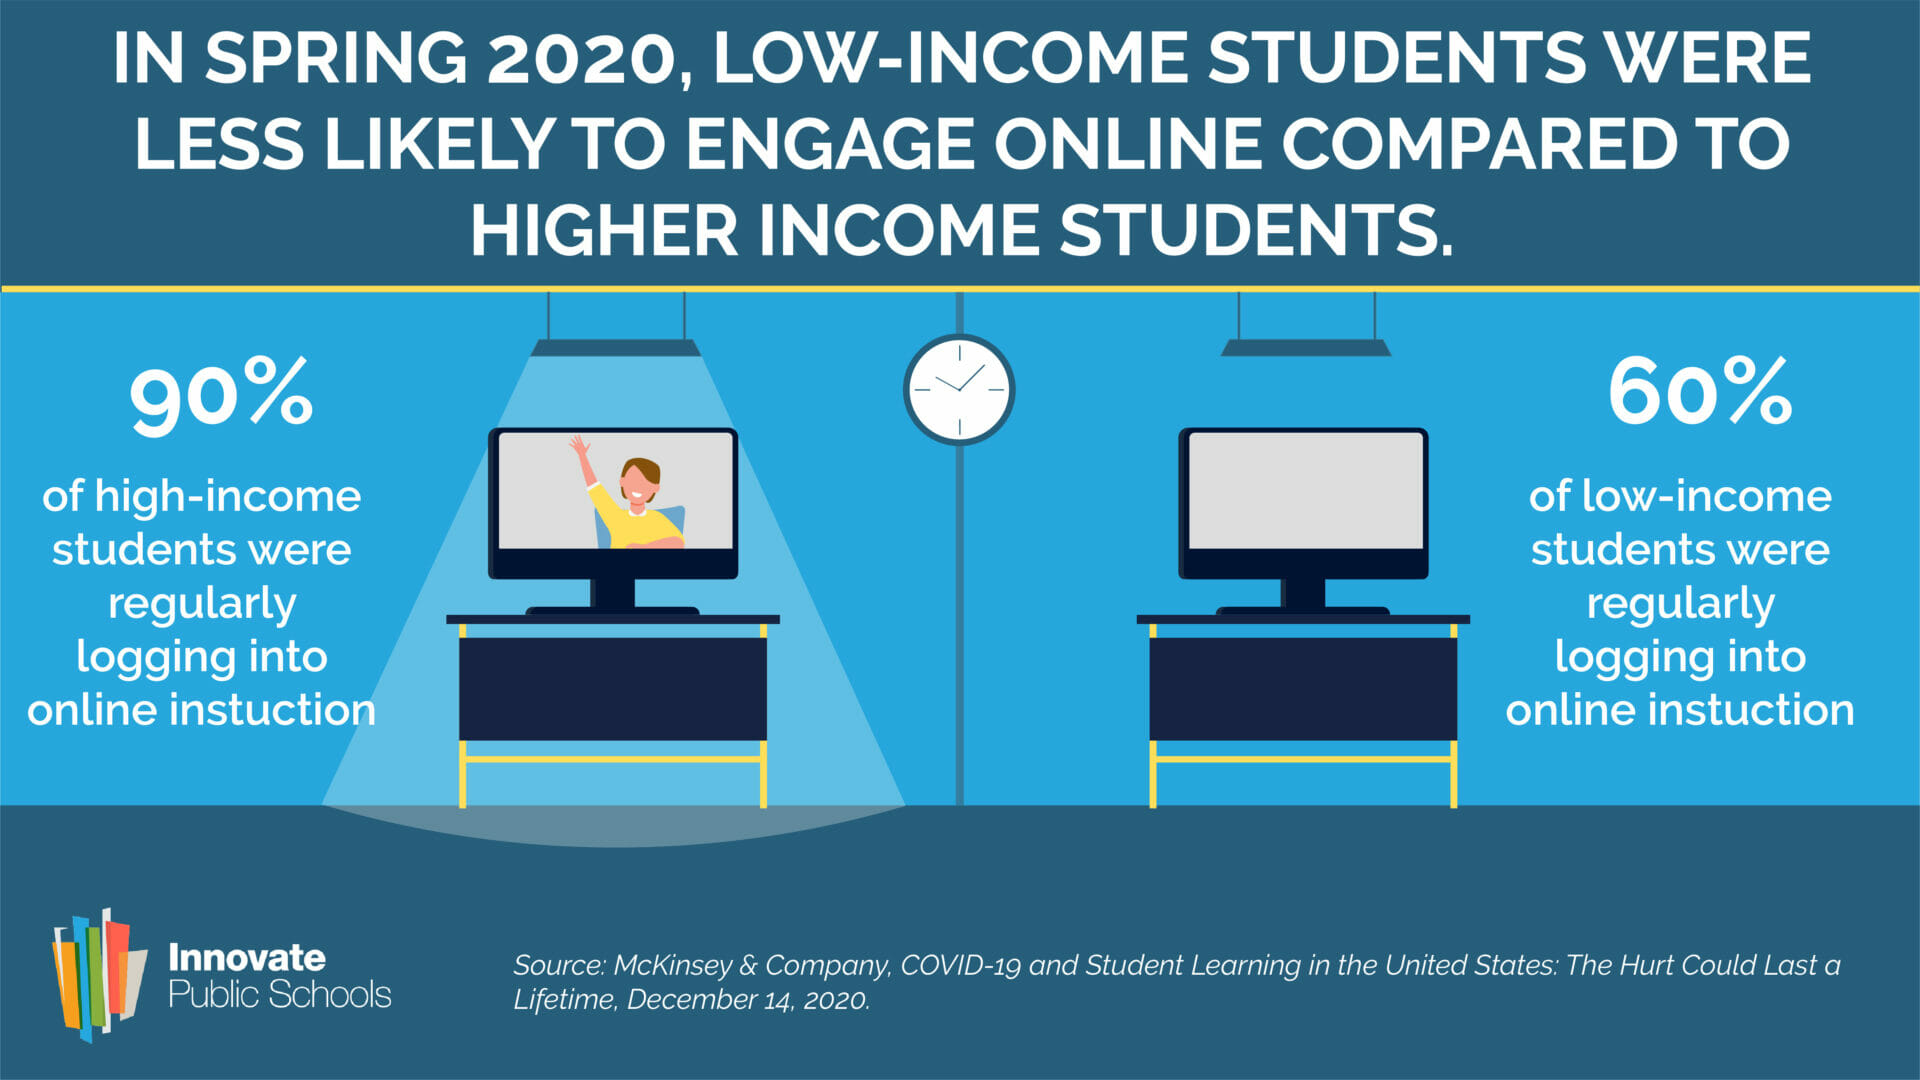 Low-Income Students Less Likely to Engage Online